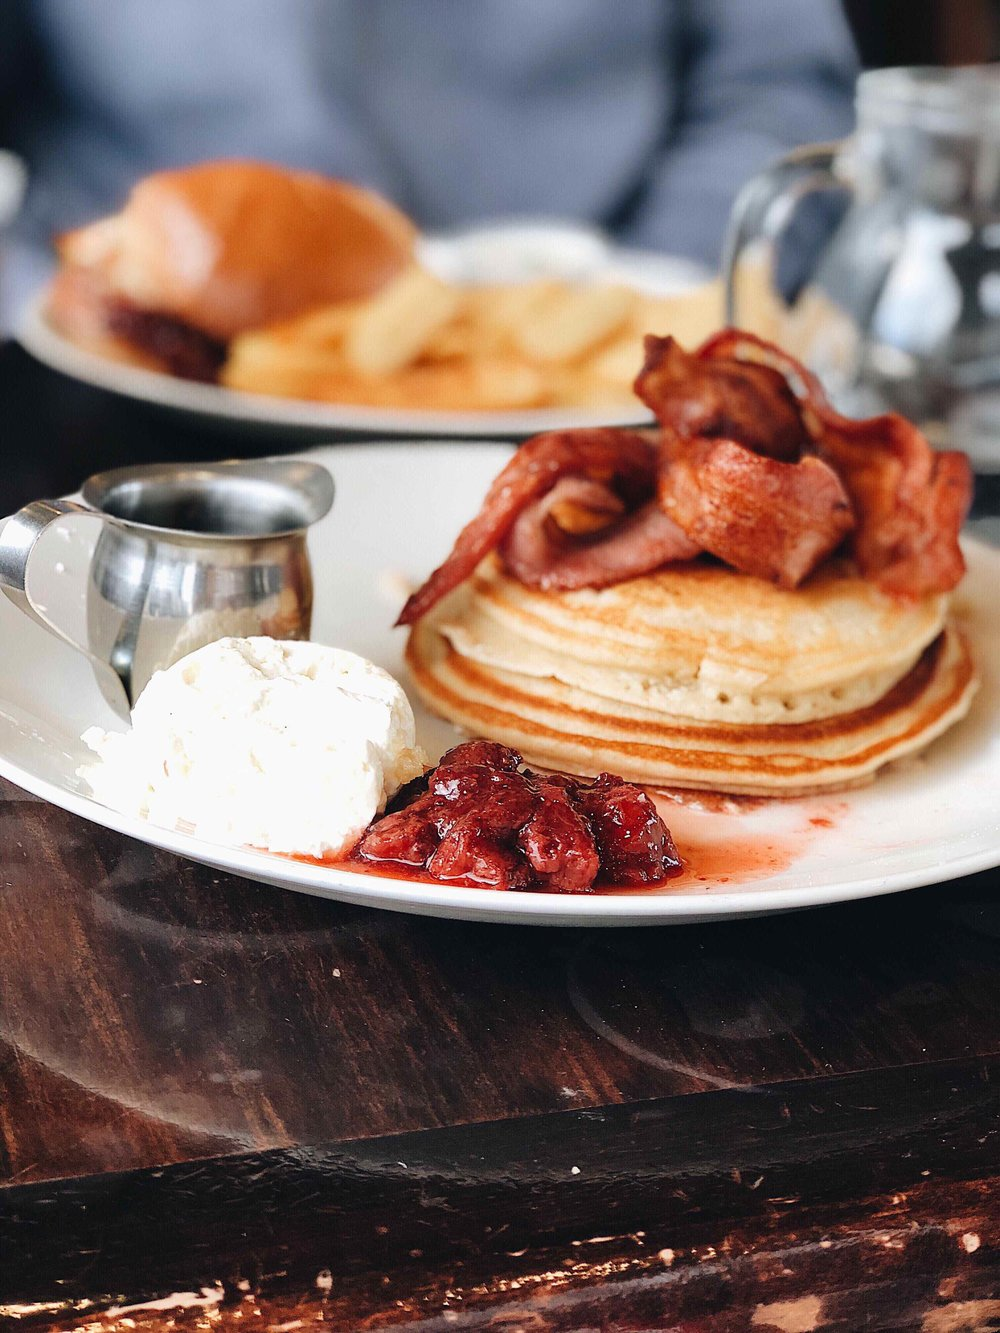 1. Must try pancakes at Brigittes - Of course after all those adventures you deserve a treat for brunch so in at number one we have Harriet Blue's pancake recommendation featured at Brigittes, Merivale.Pancakes with streaky bacon, maple syrup, macerated strawberries and fresh whipped cream are a must try for $19 plus enjoy the sunshine with outdoor seating as an option also.#brunch #family #pancakes